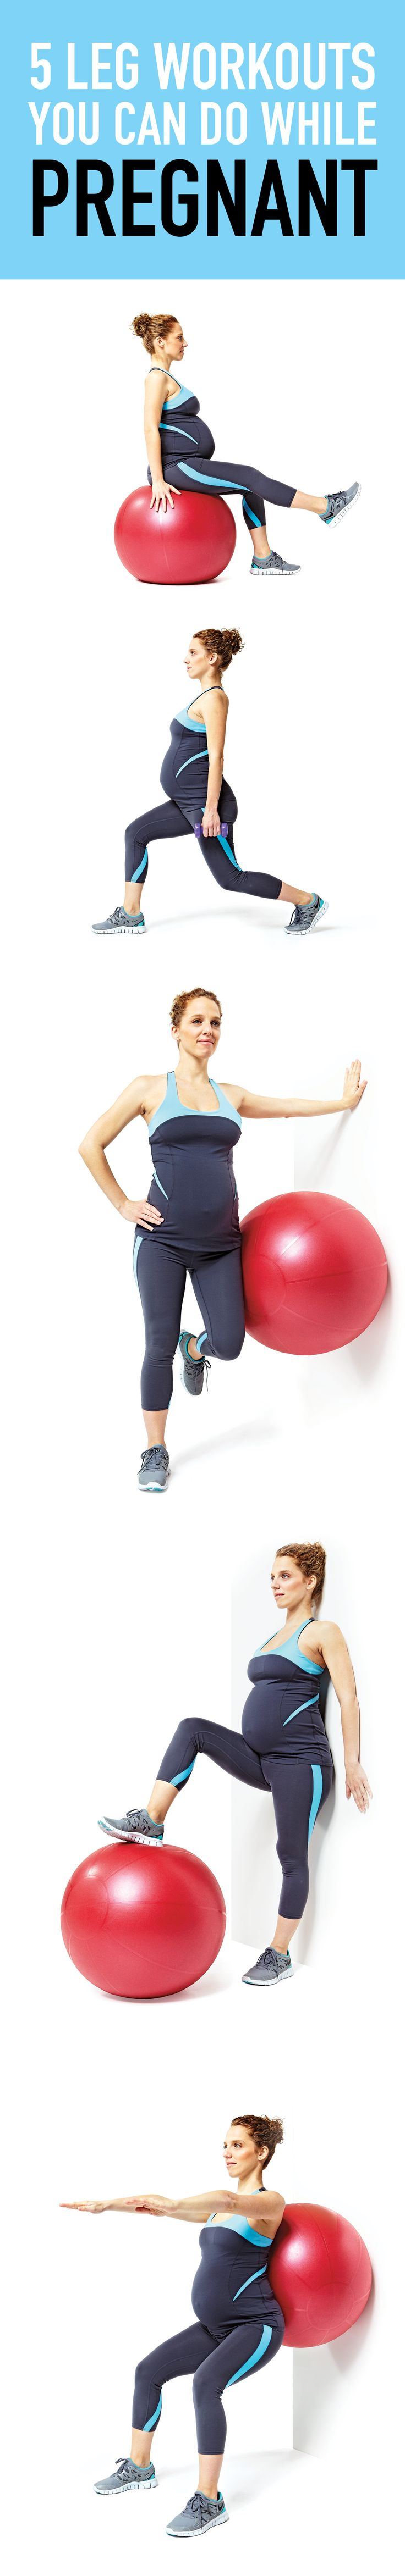 This specially designed pregnancy workout will target your legs!